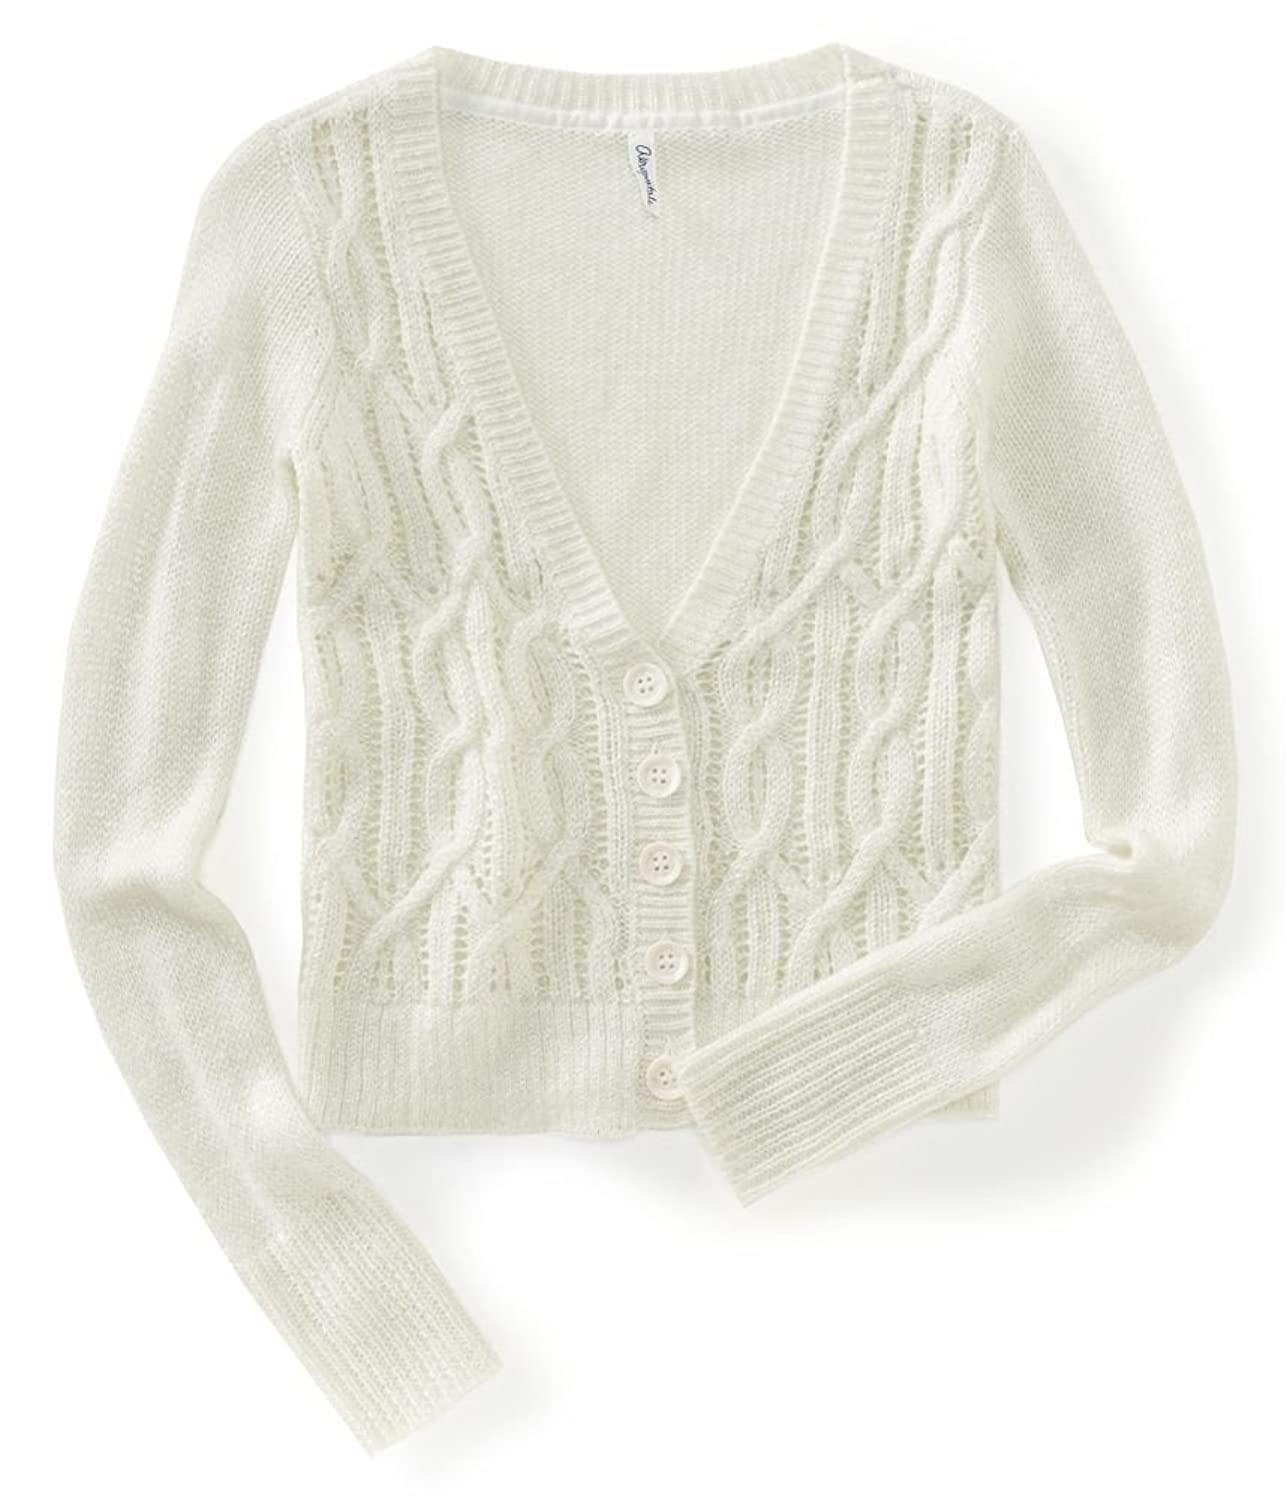 Aeropostale Womens Knit Cardigan Sweater